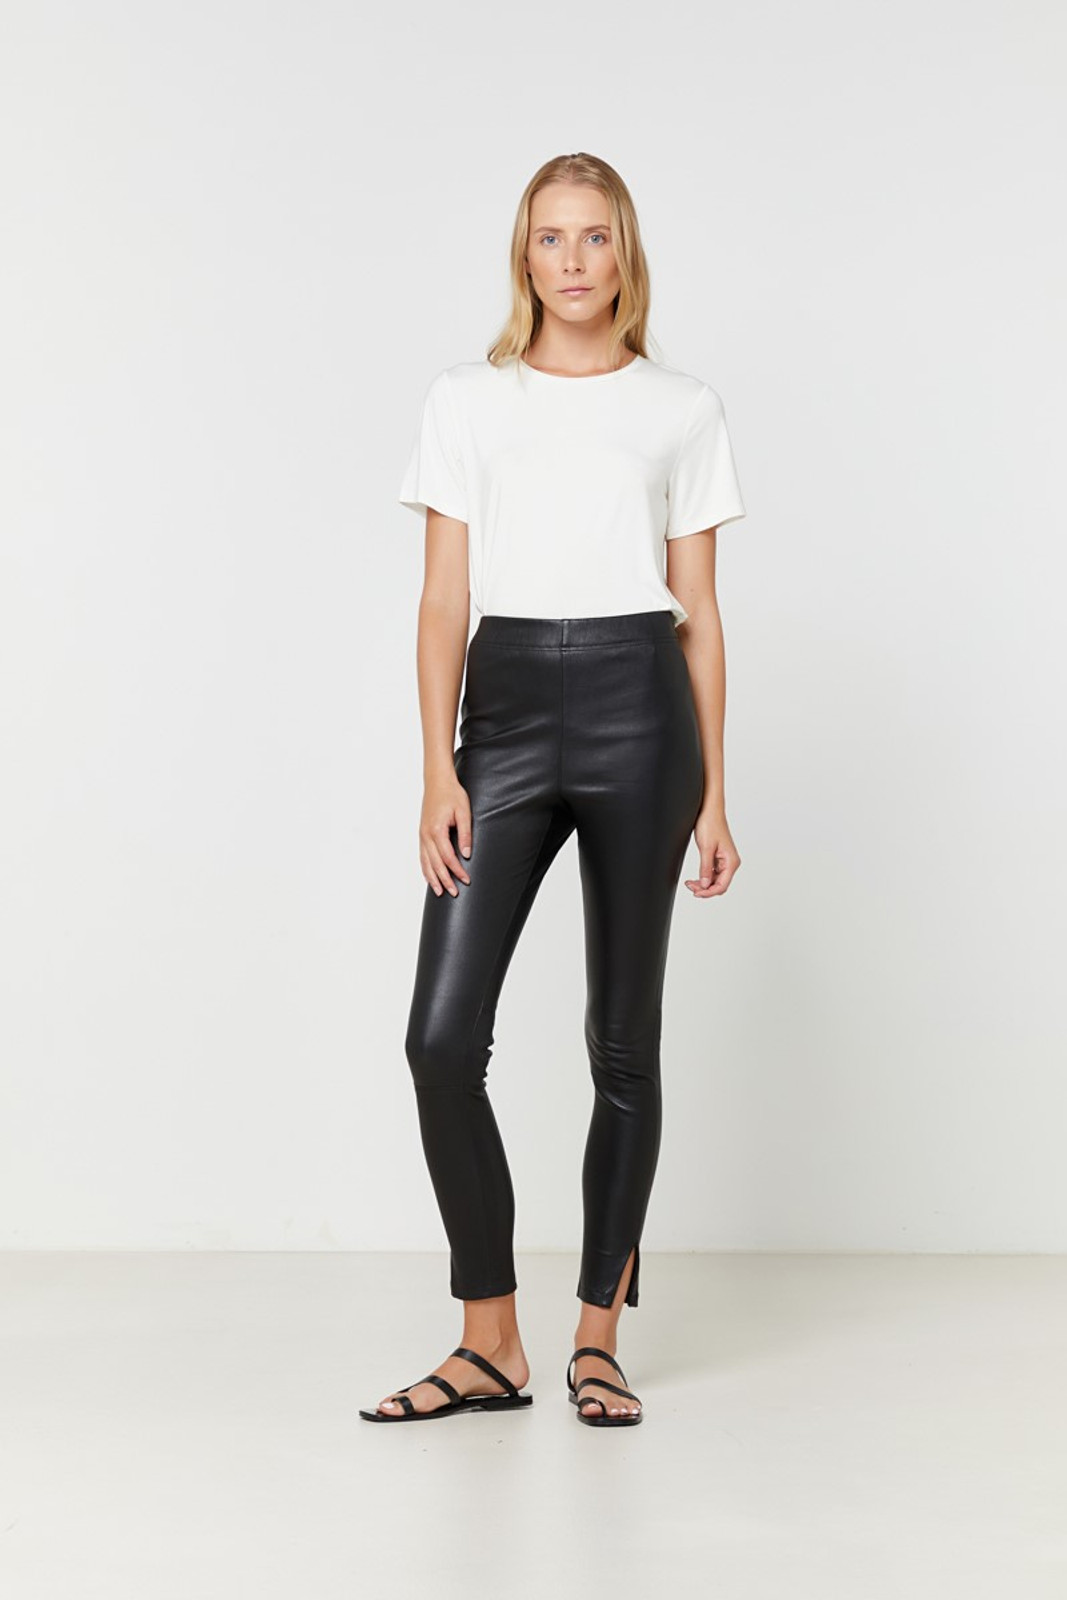 Elka Collective Rosa Leather Pant Black  4